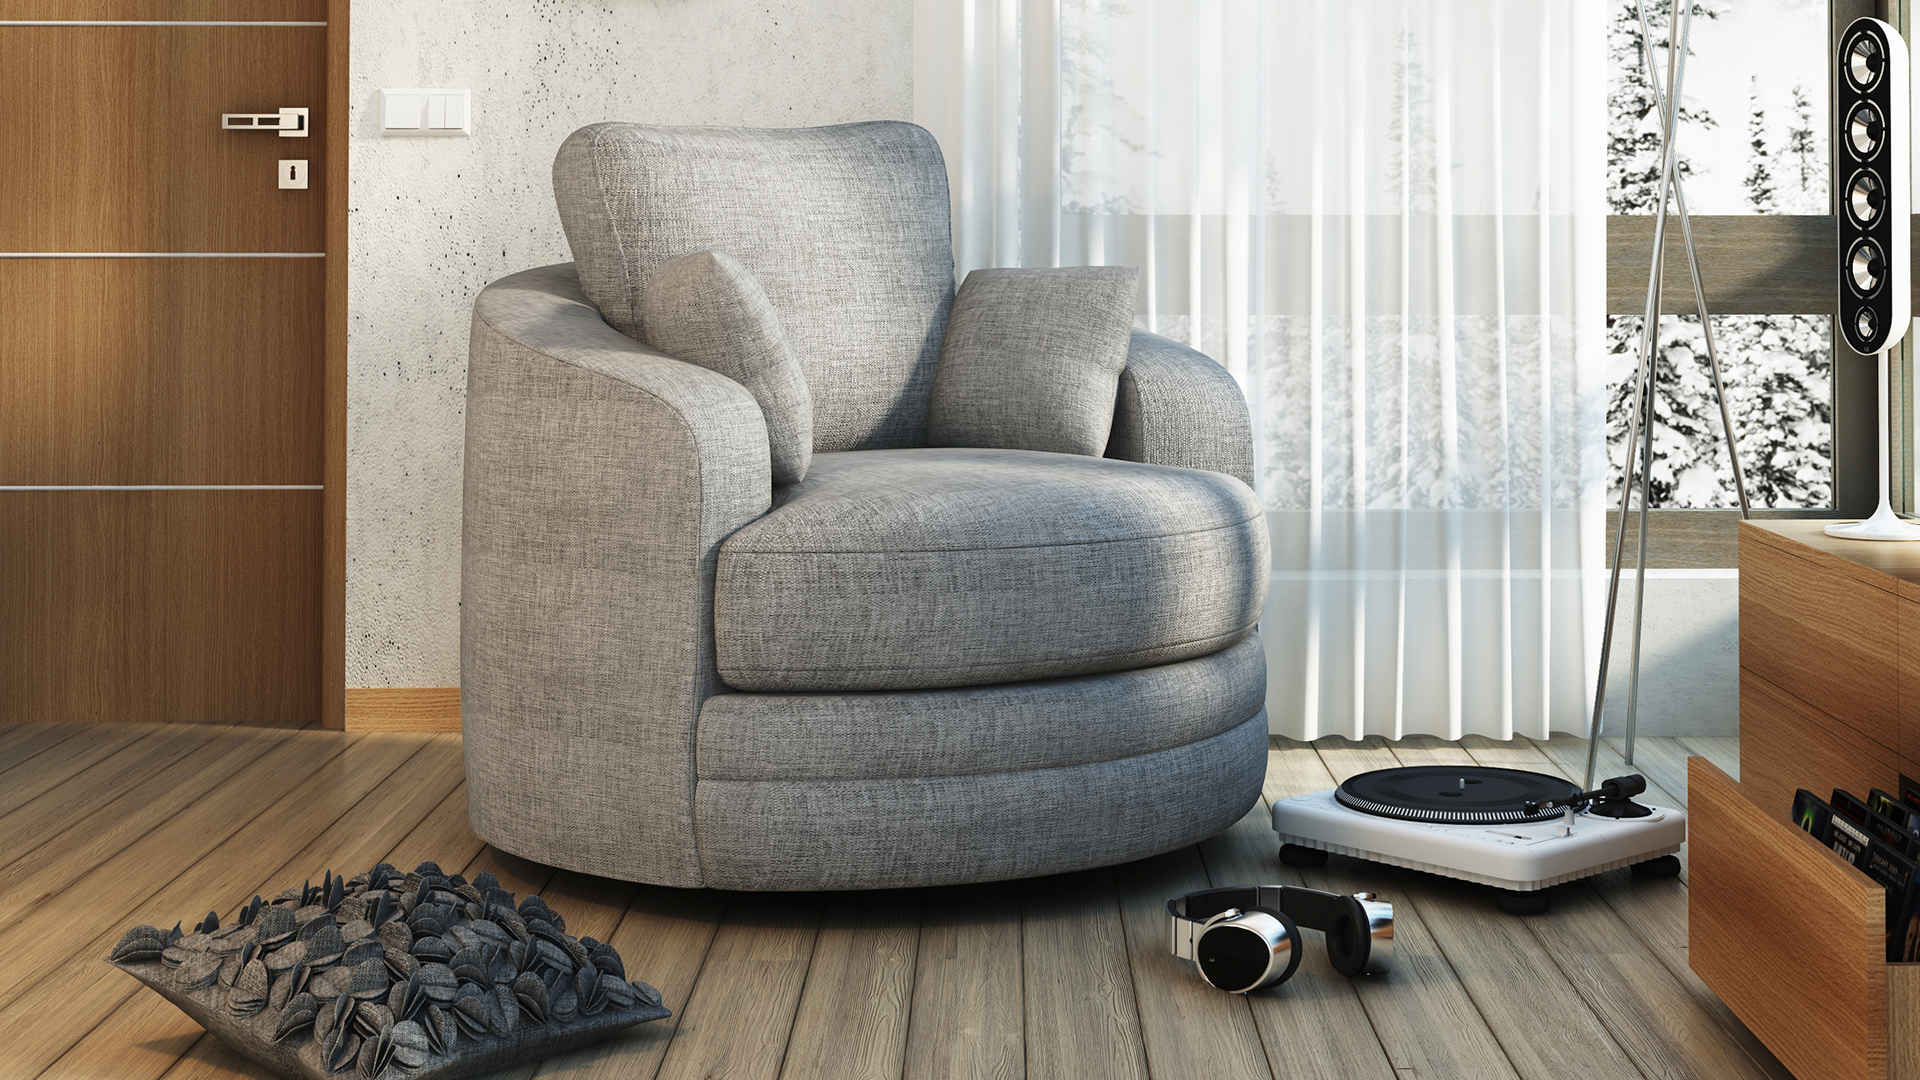 fauteuil rond pivotant tissu gris90 buckie salon mobiliermoss le blog mobilier moss. Black Bedroom Furniture Sets. Home Design Ideas